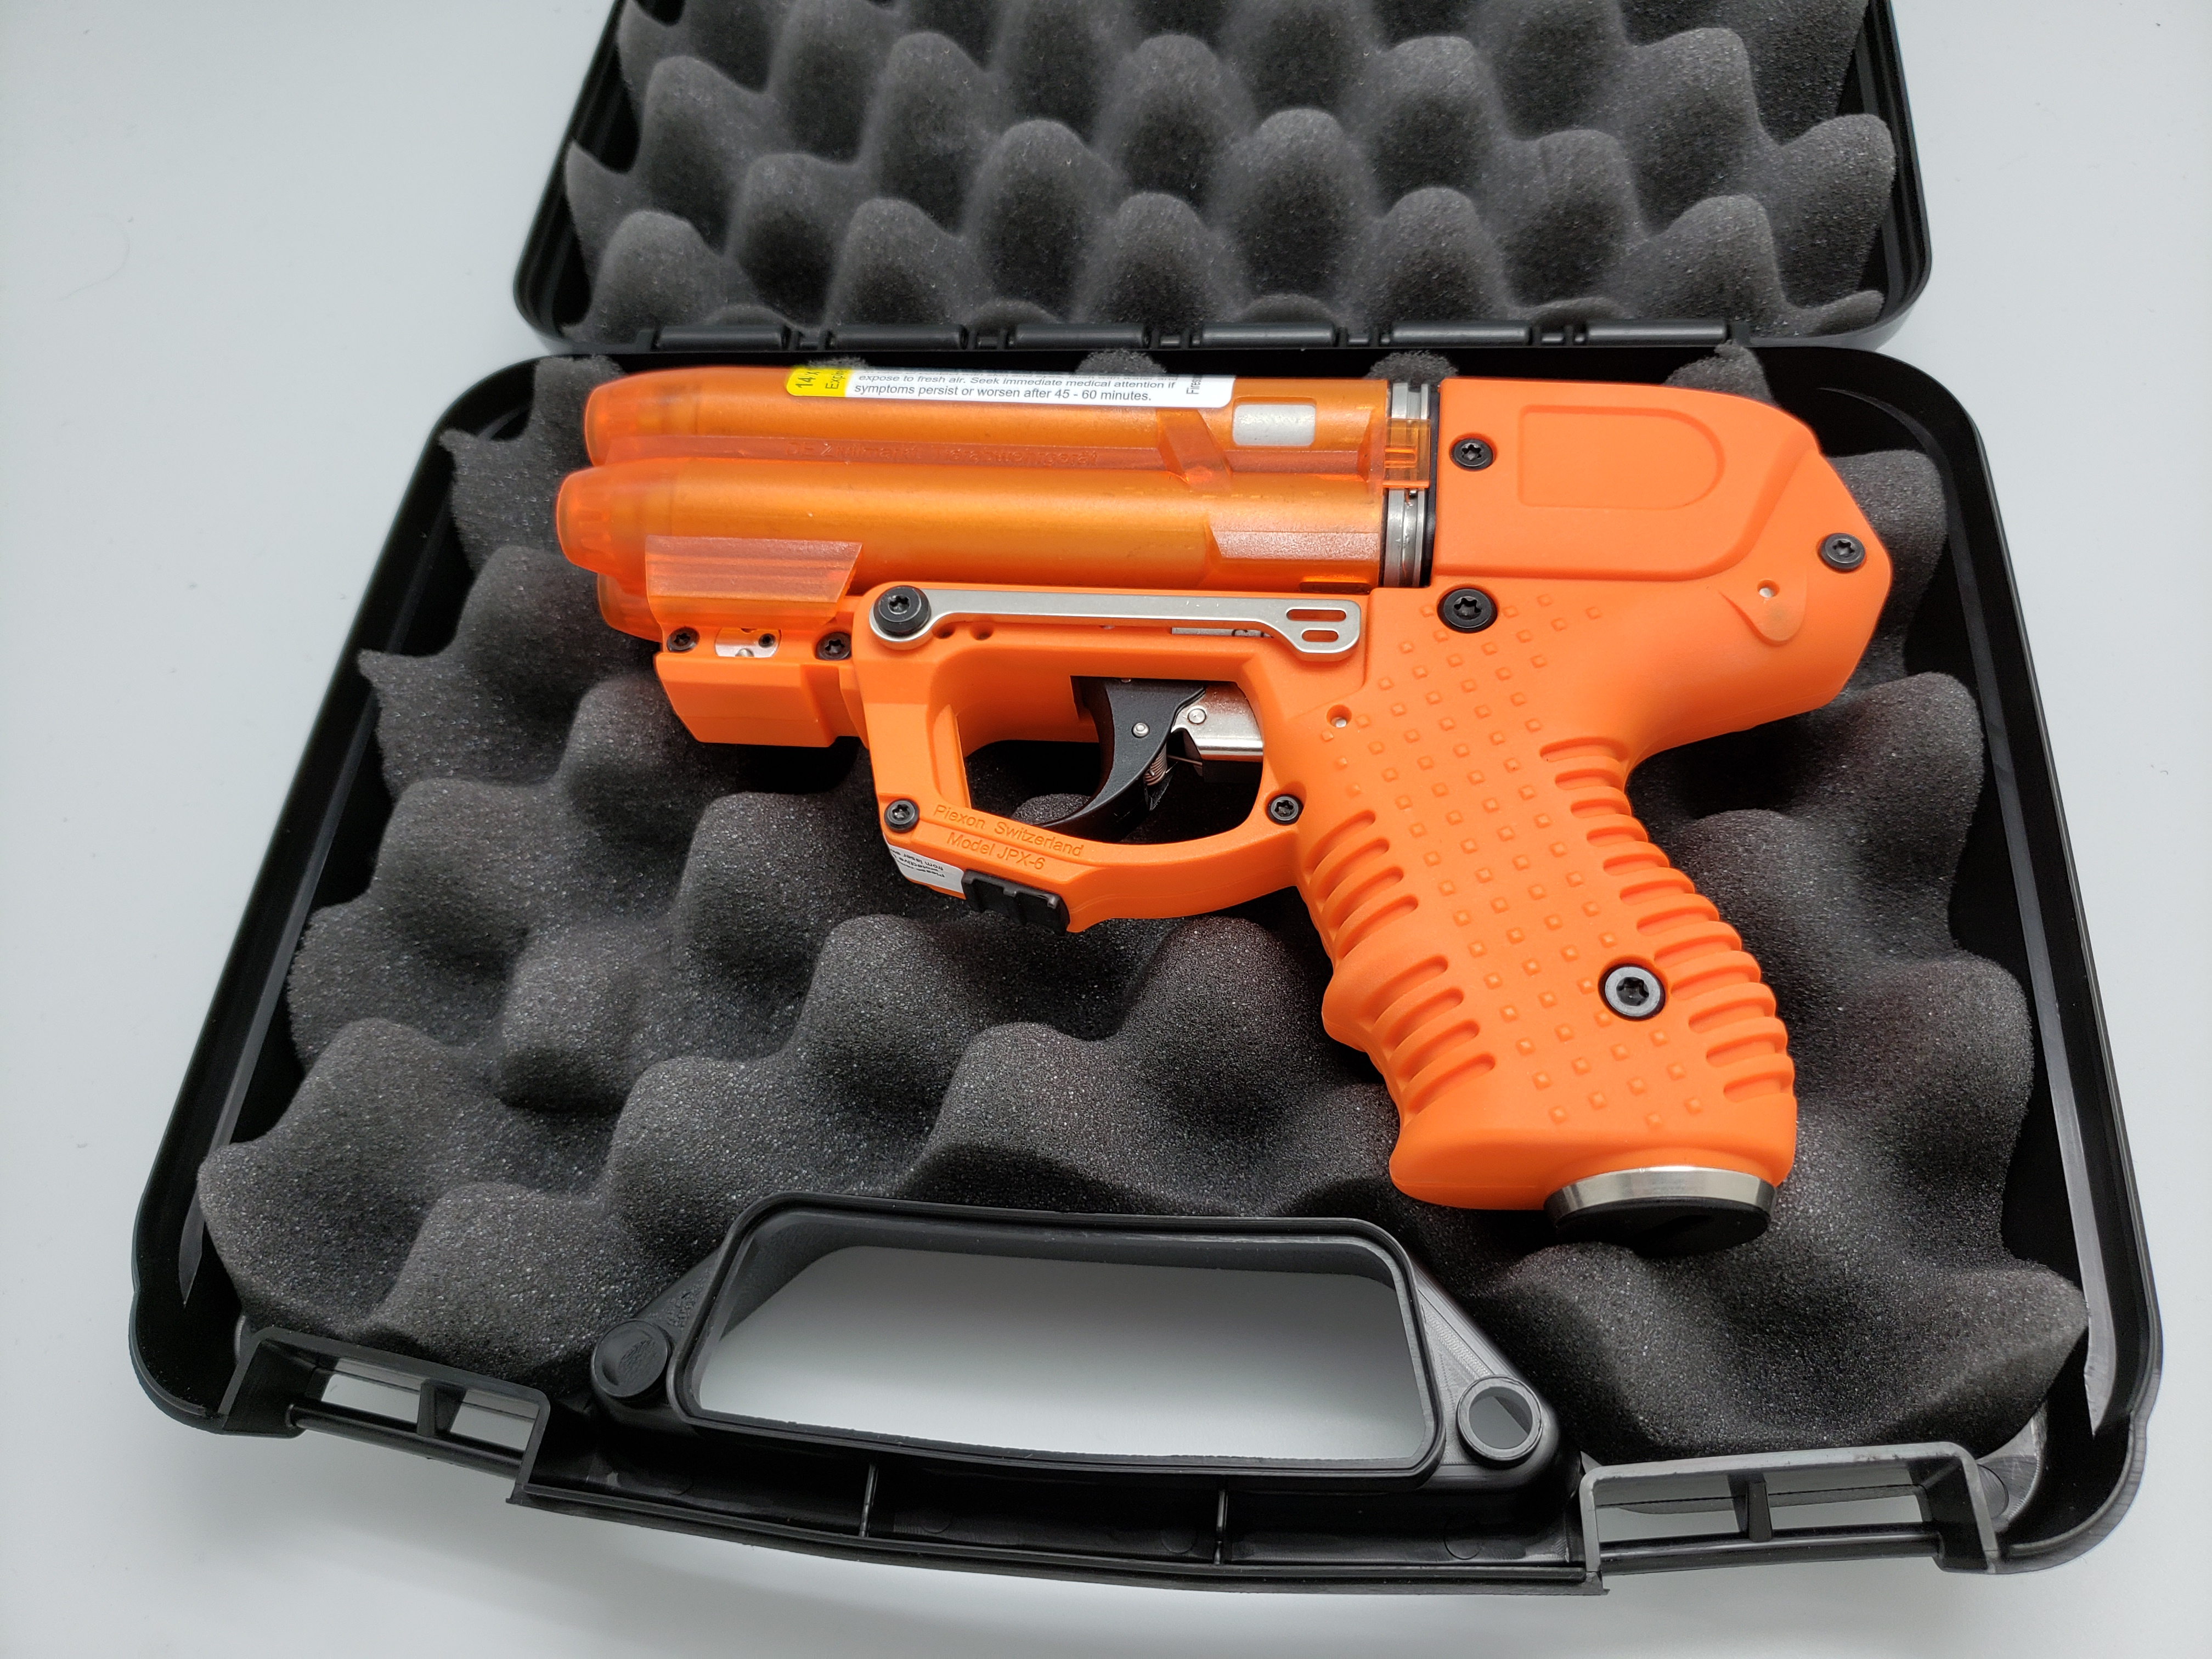 FIRESTORM ORANGE JPX 6 LE Defender Pepper Gun with laser